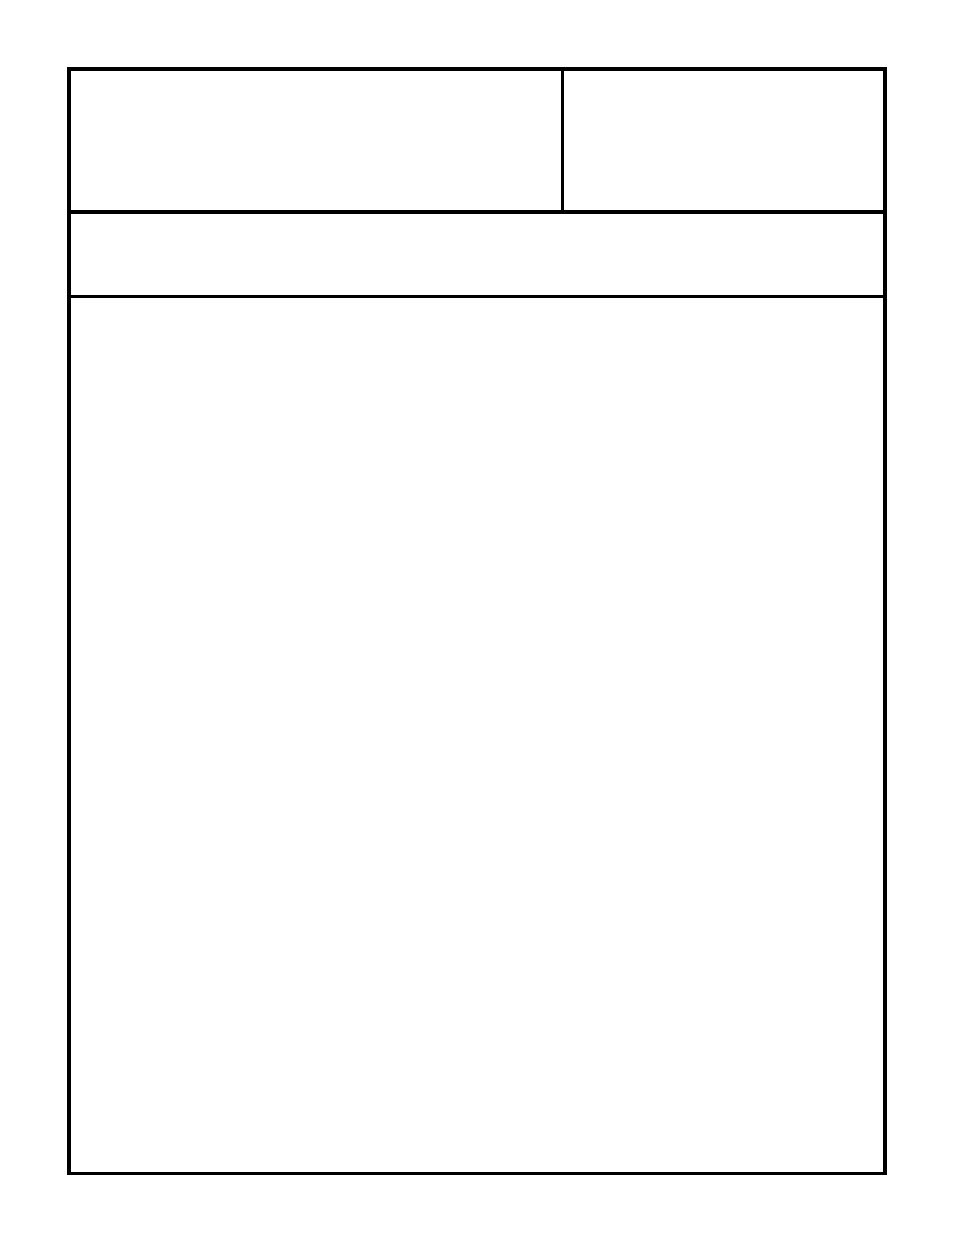 Advance Adapters 50-0205 User Manual   2 pages